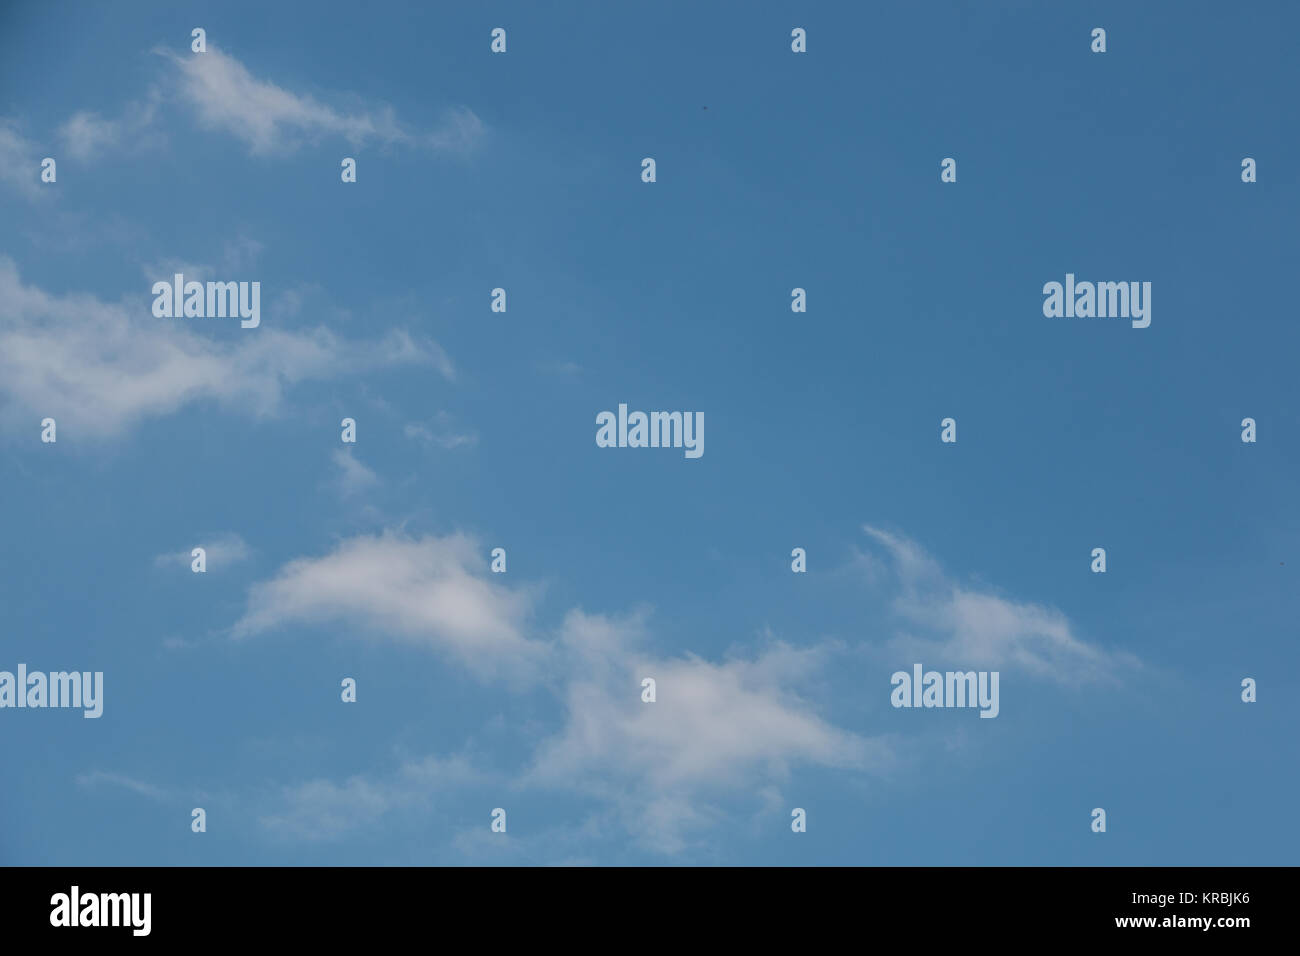 White clouds that look like a dragon or dinosaur in the deep blue sky - Stock Image